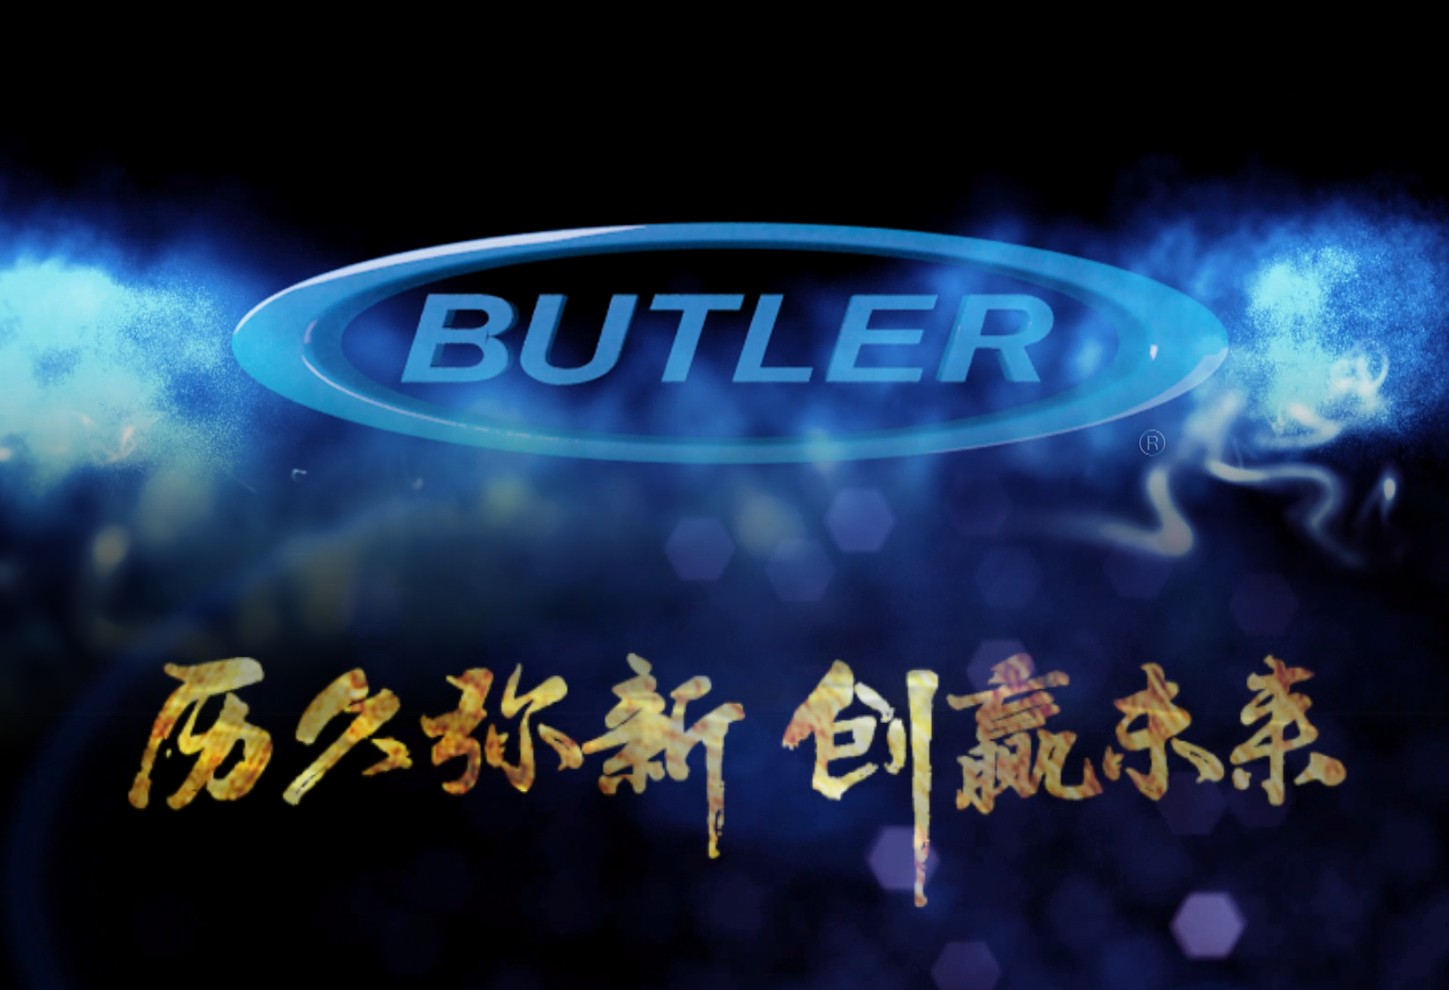 巴特勒中国 Butler China.jpg